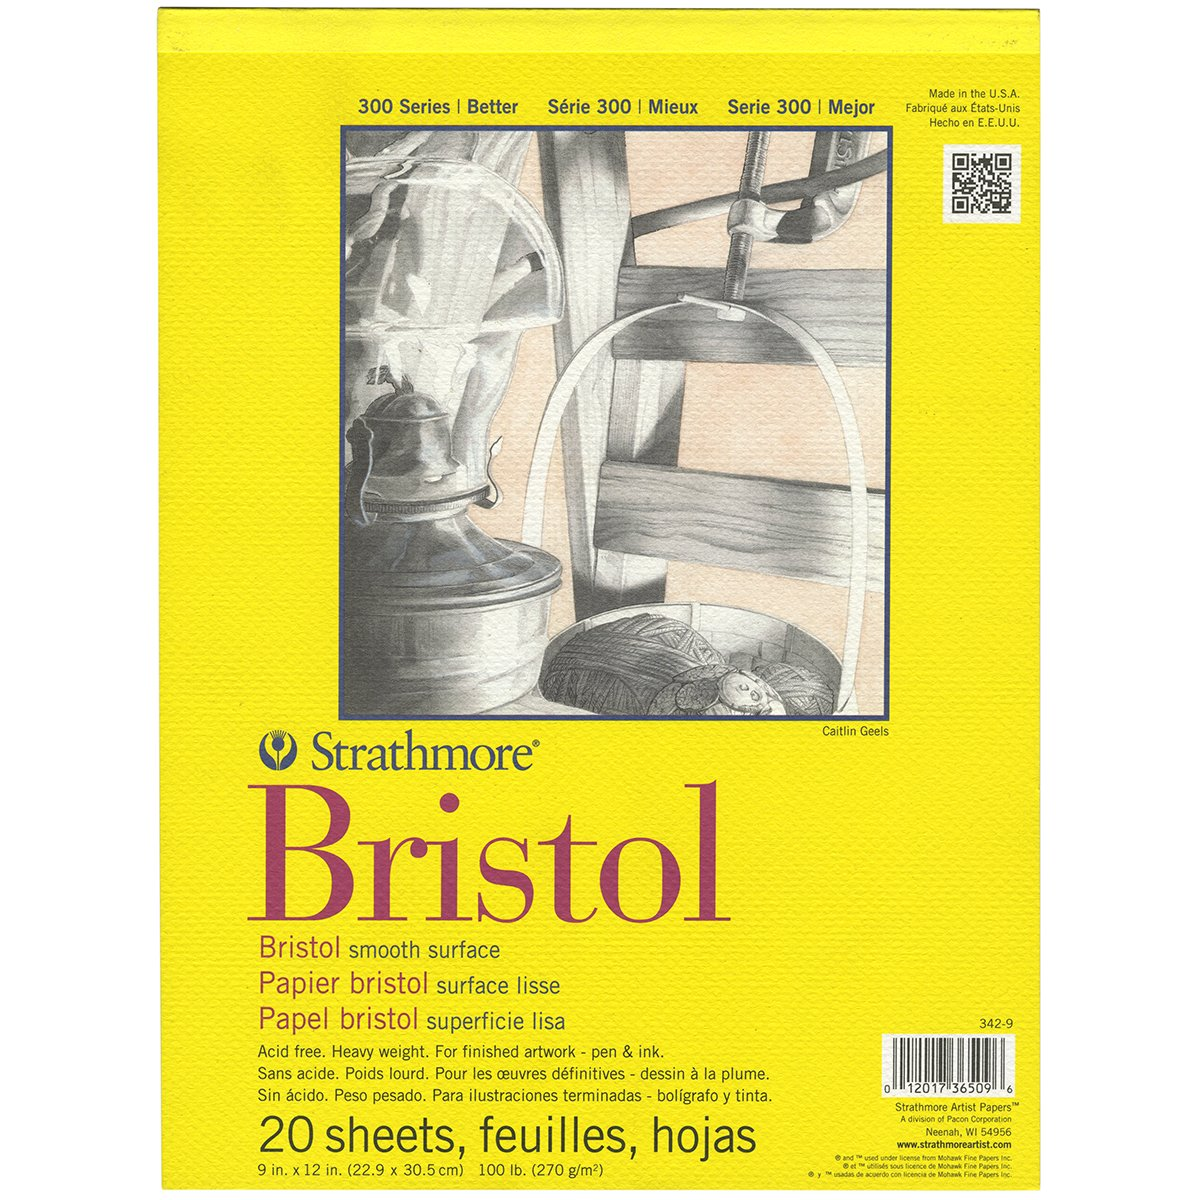 Bristol Smooth Surface Paper   This is what I use for all the custom lettering I create for clients. It has a smooth surface and is thicker than card stock. It is my favorite type of paper.